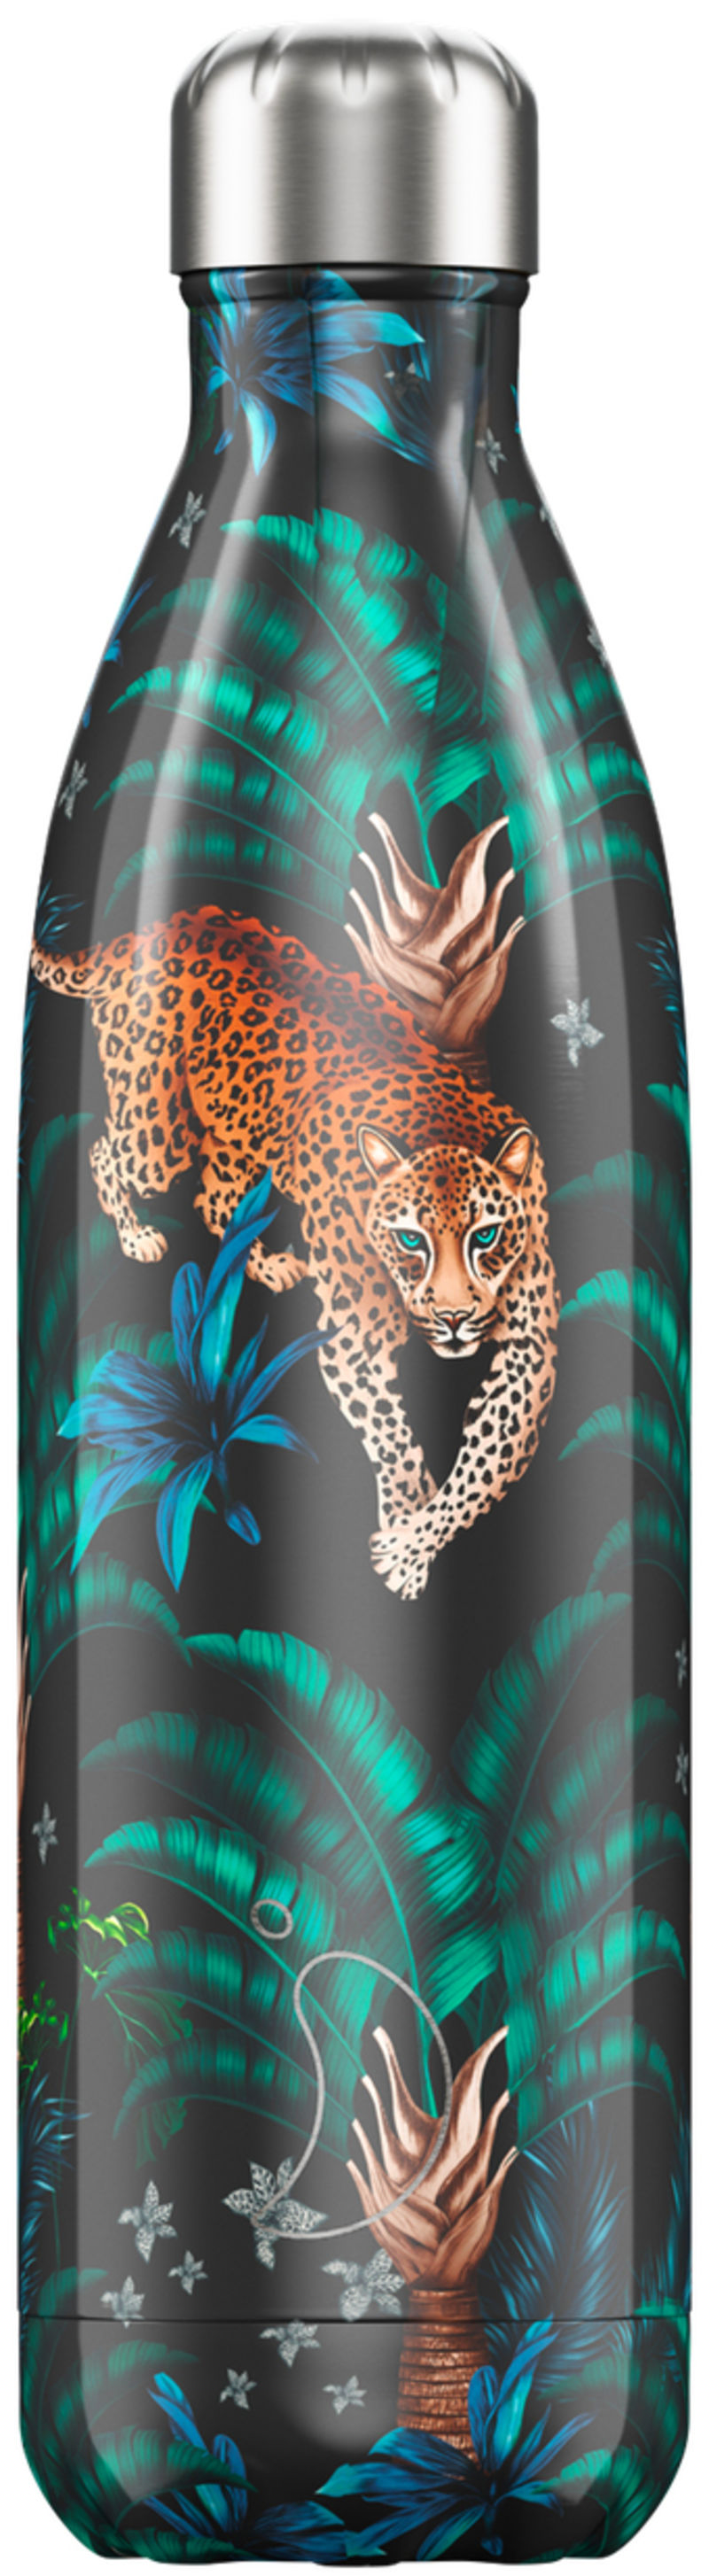 BOTELLA INOX LEOPARDO 750ML